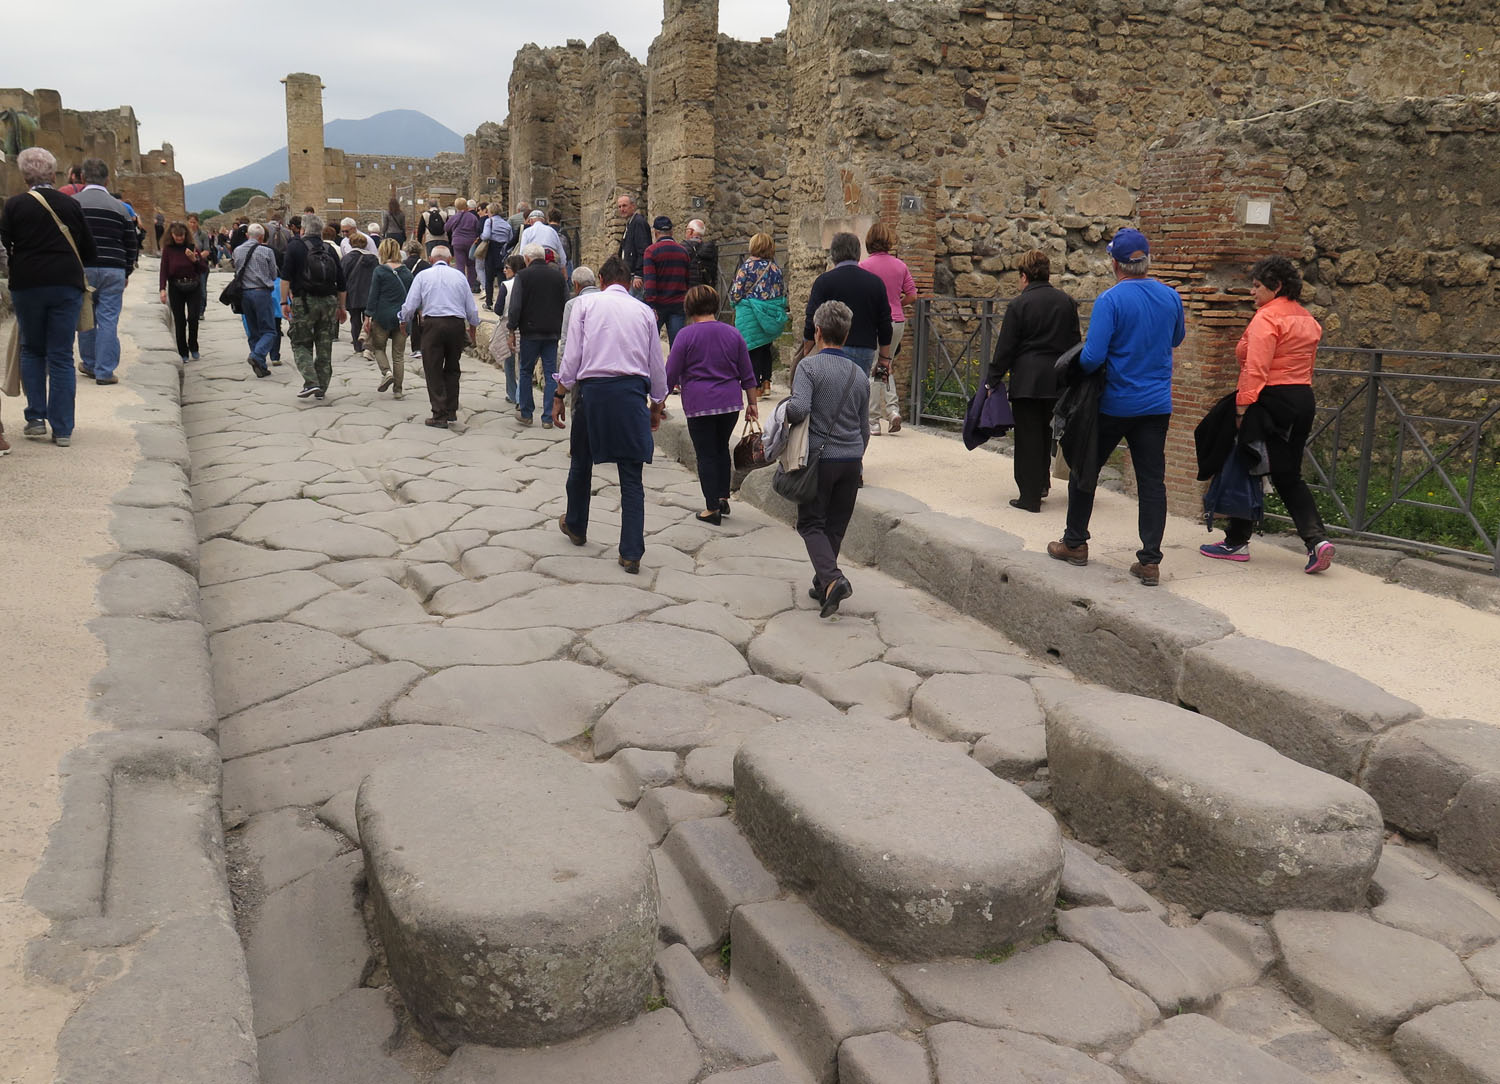 Italy-Pompeii-Stepping-Stones-And-Wheel-Ruts